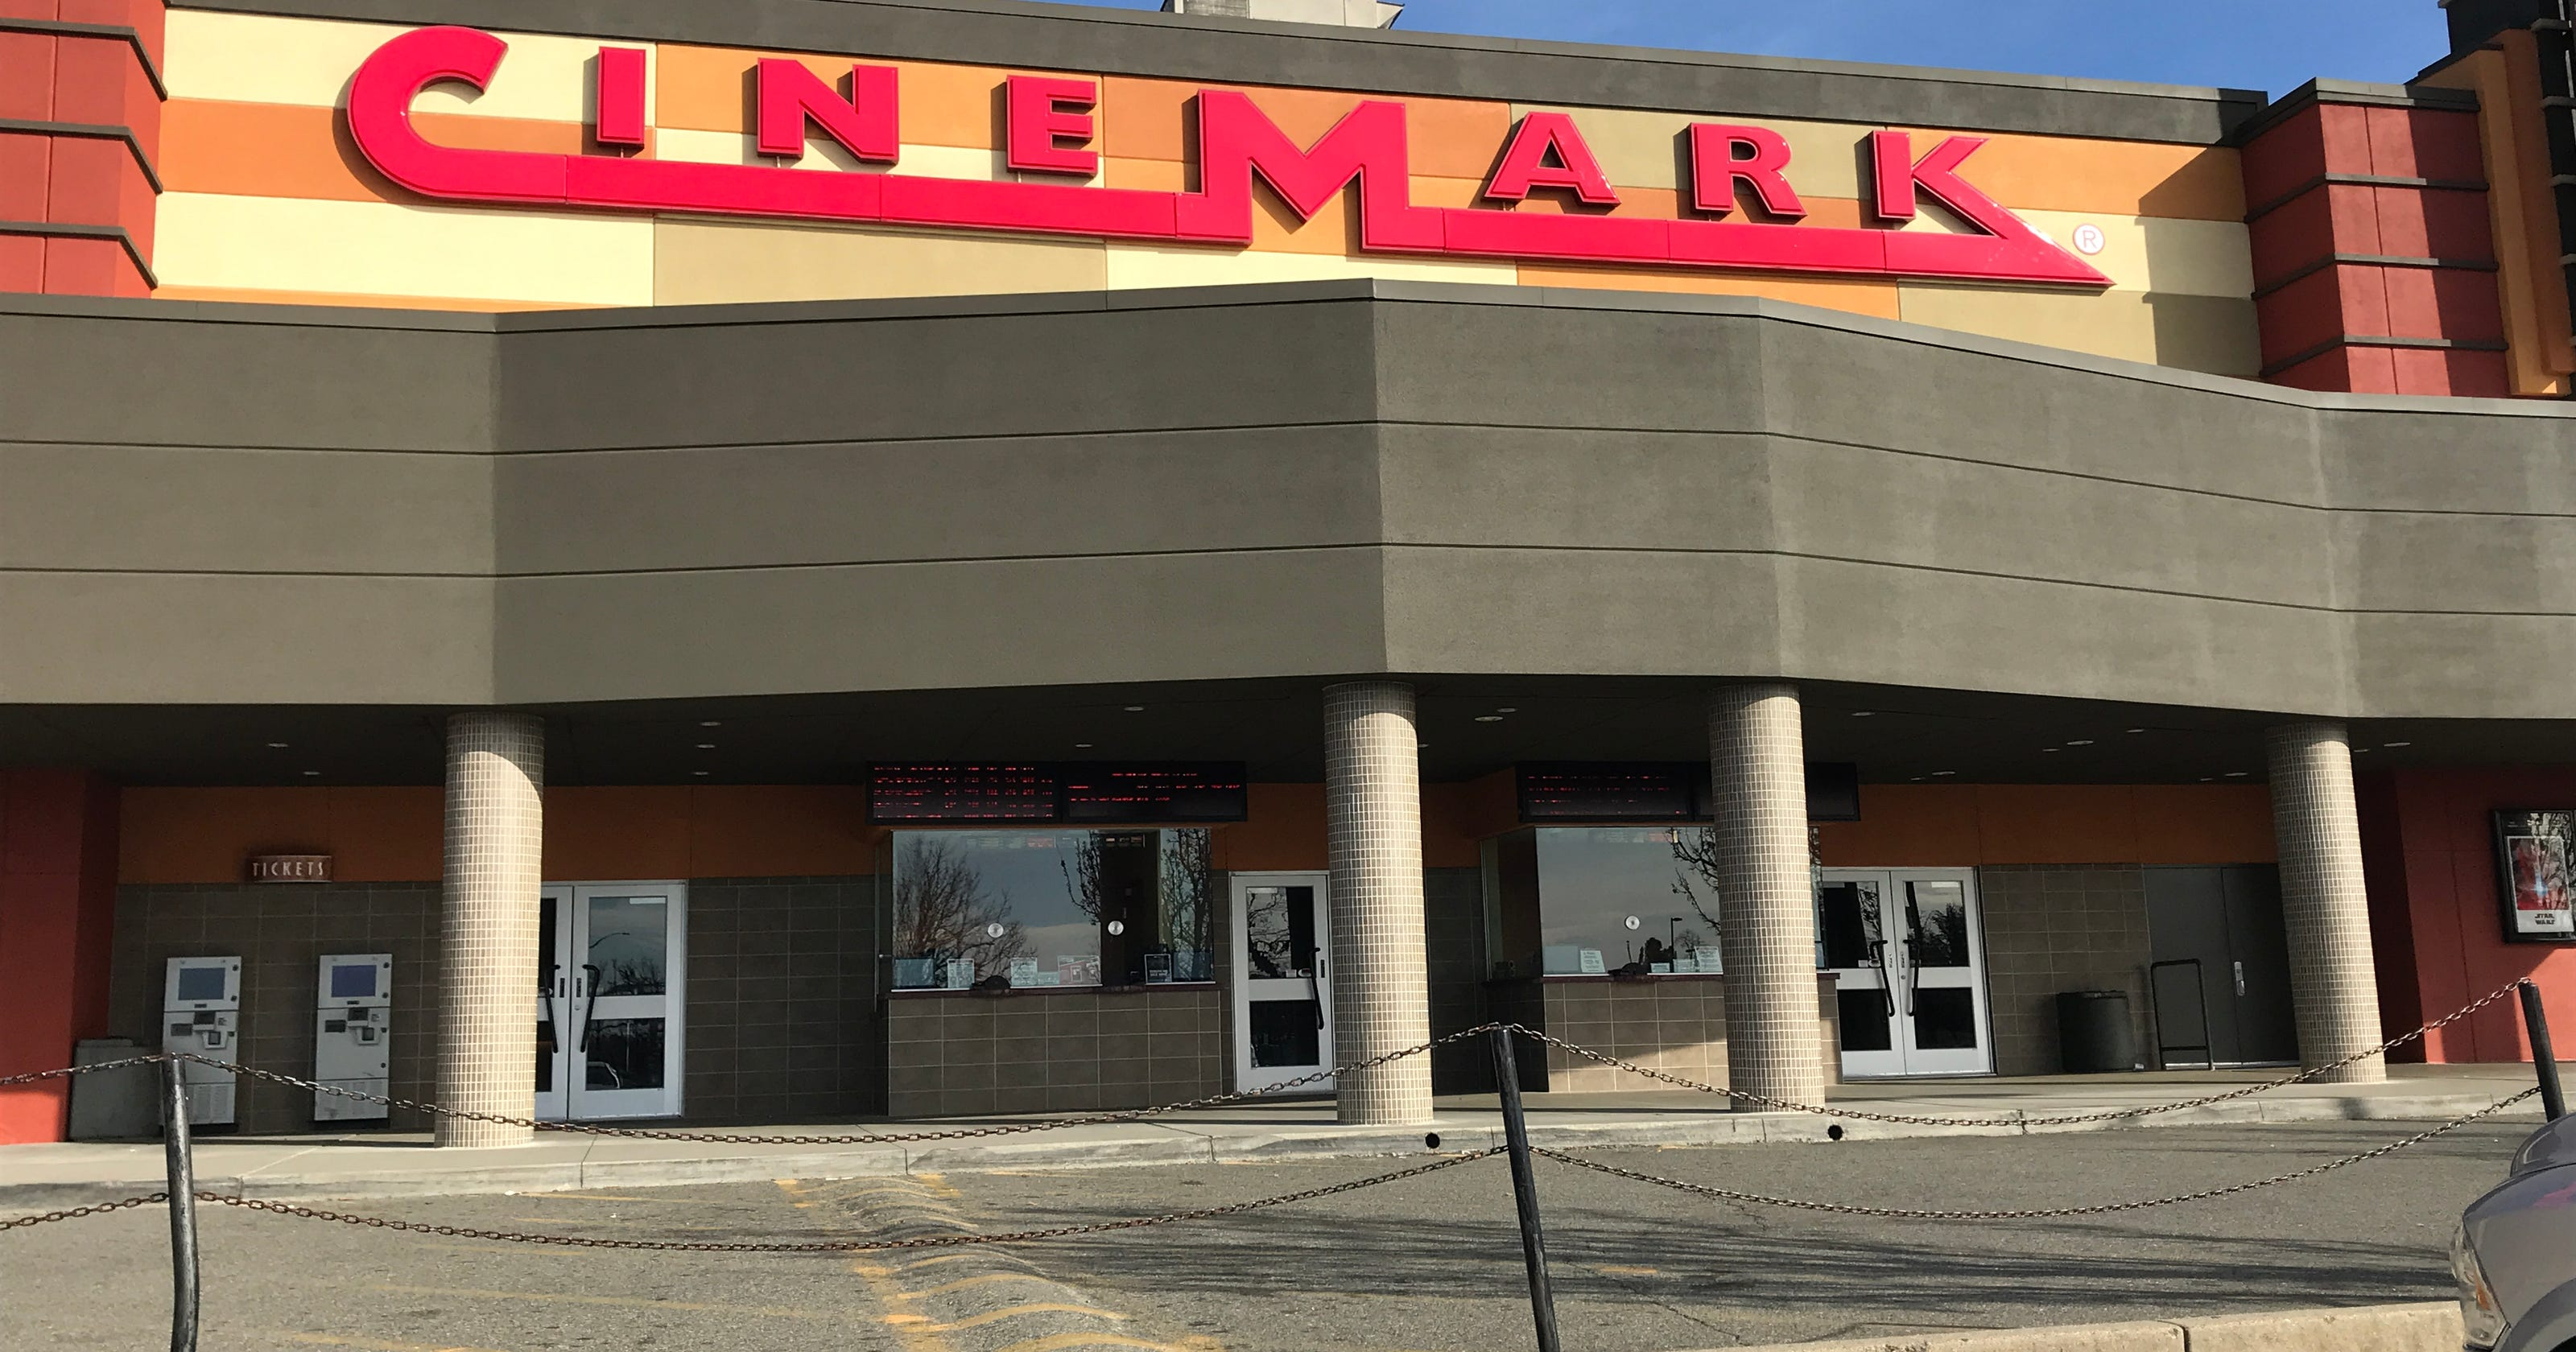 Cinemark 14 in Redding wants to serve alcohol